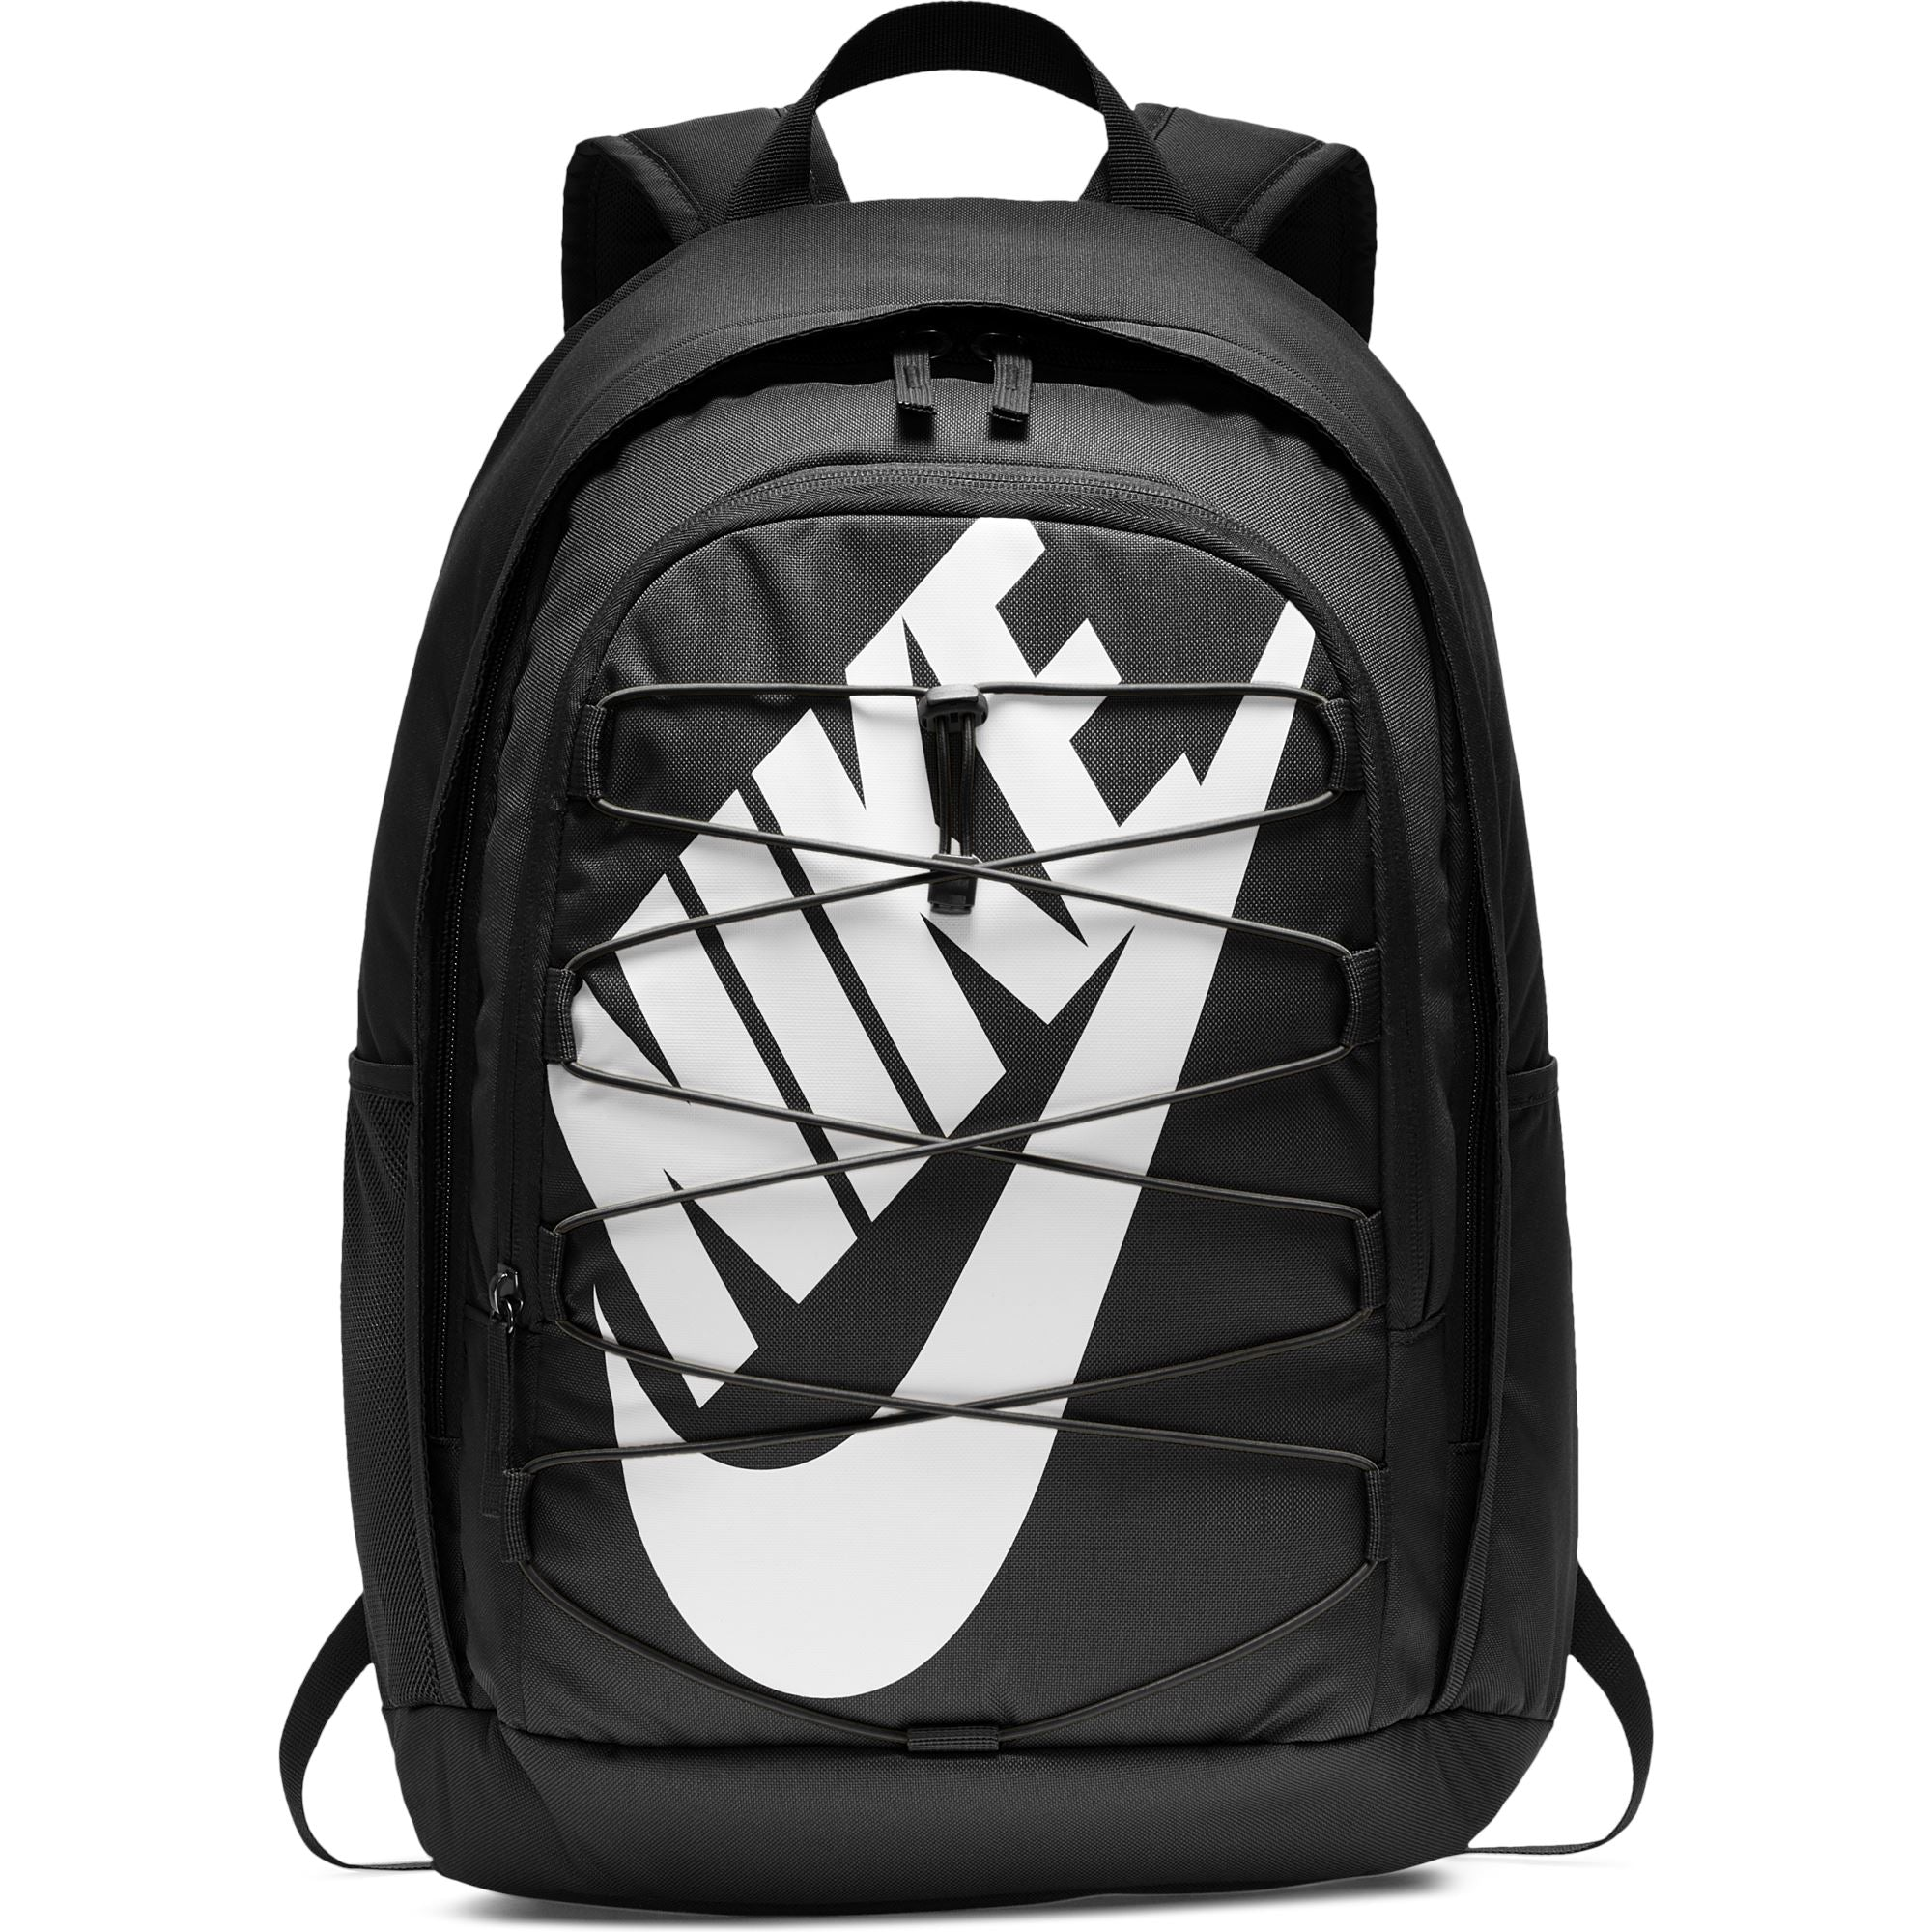 Nike Hayward 2.0 Backpack - Black/Black/White Q3NIKE Nike